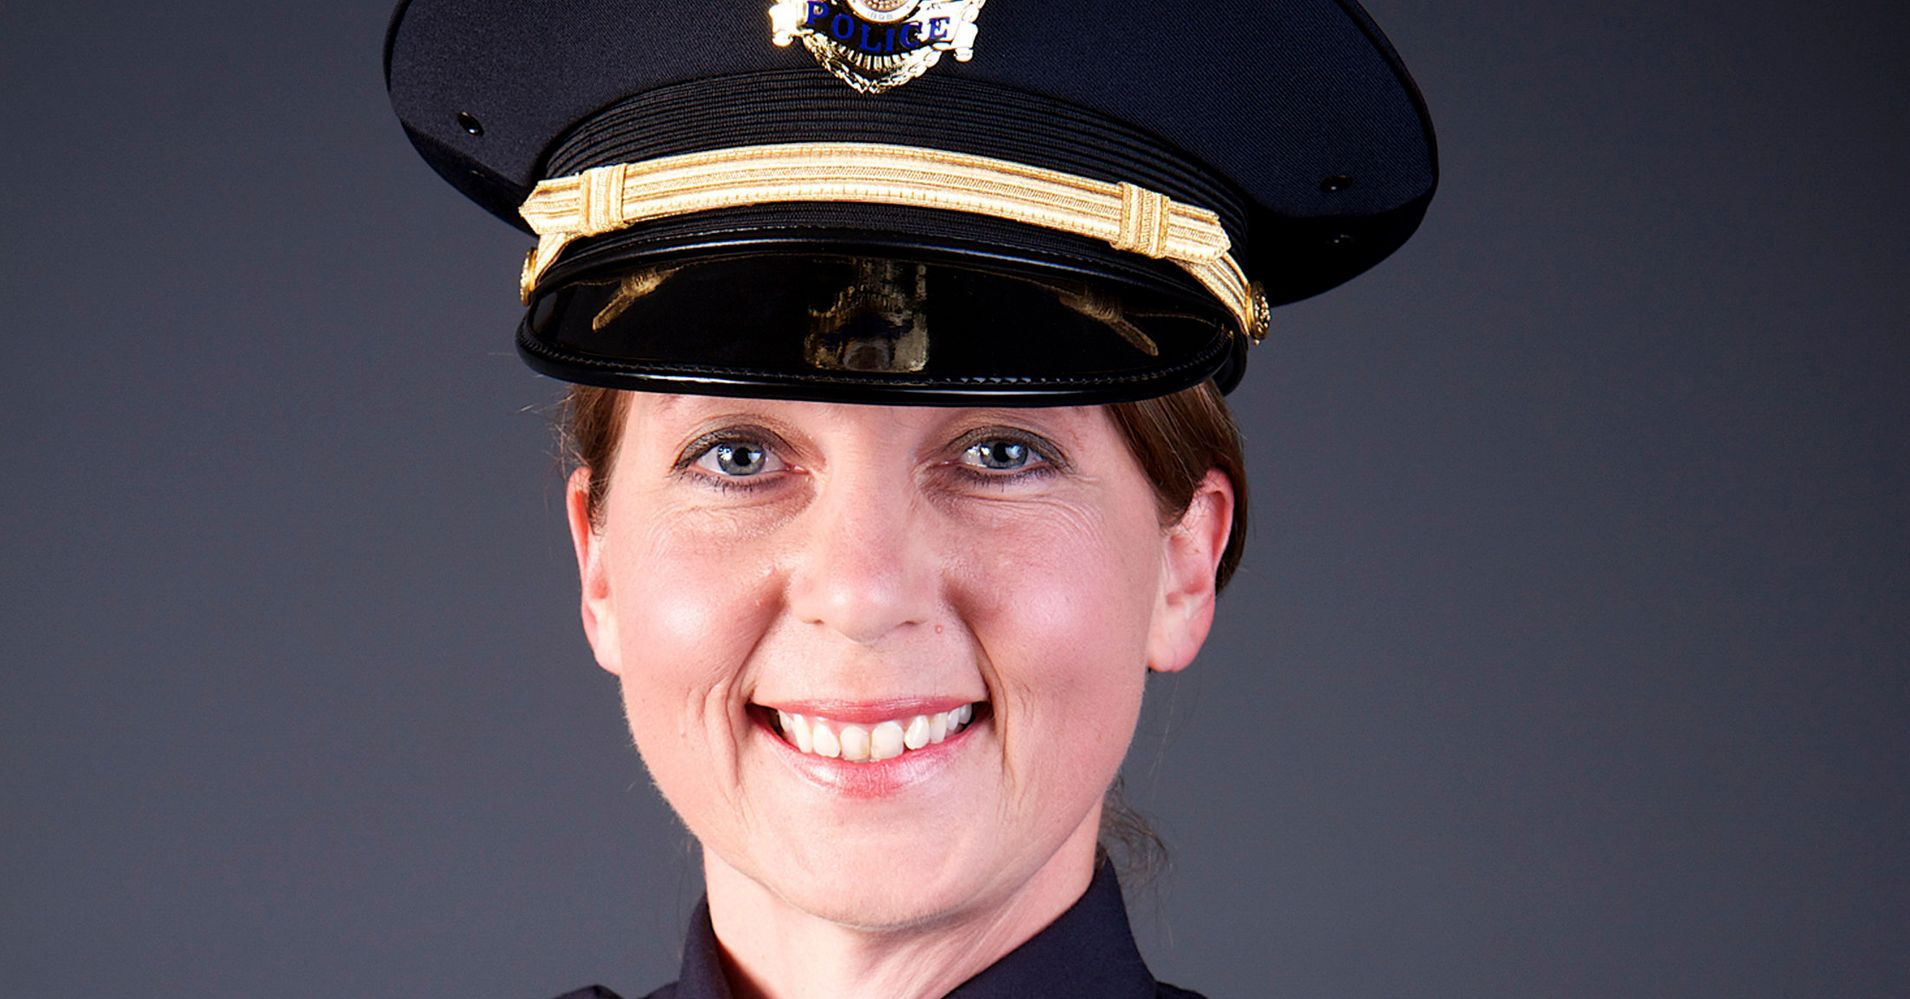 cop who shot terence crutcher has history of drug use domestic